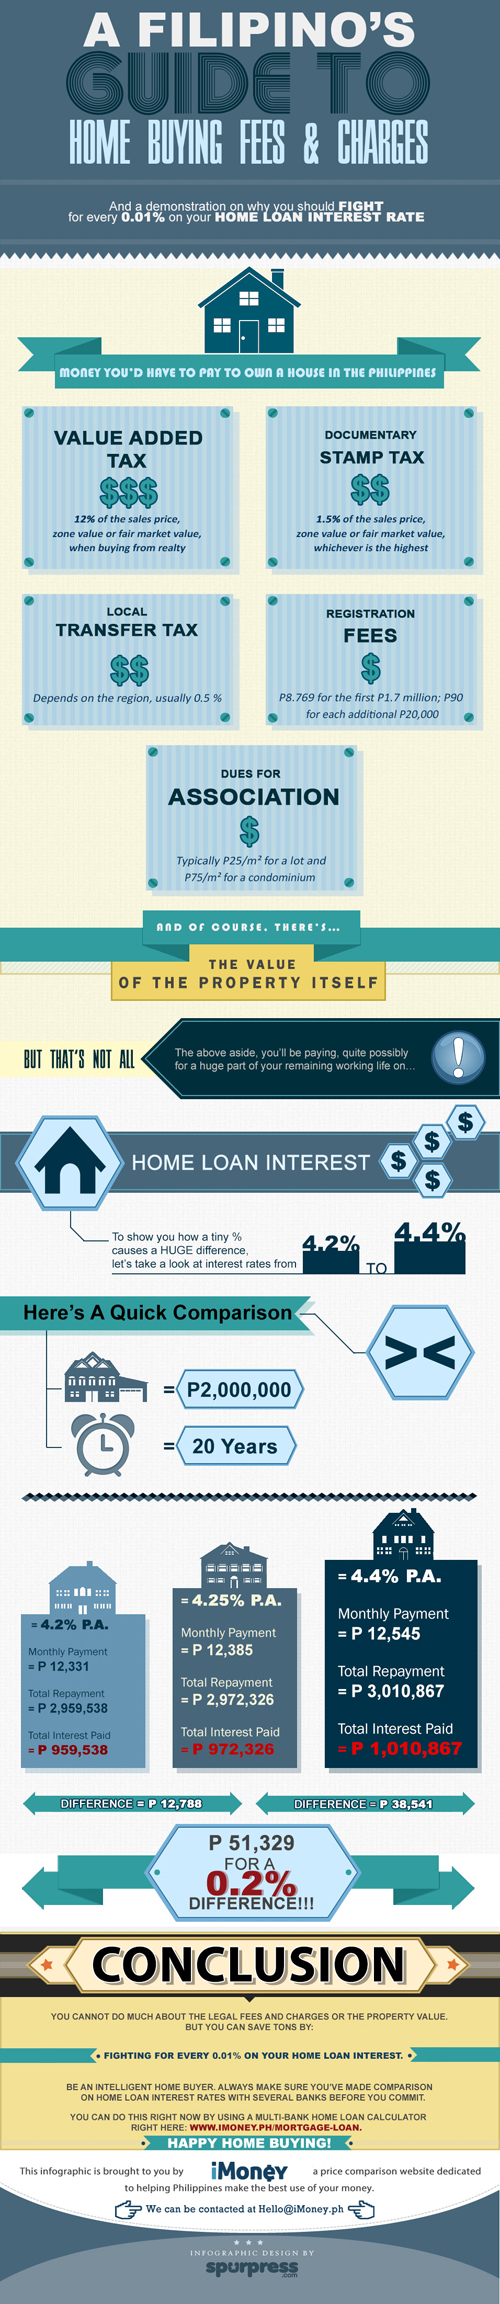 infographic-home-buying-ph